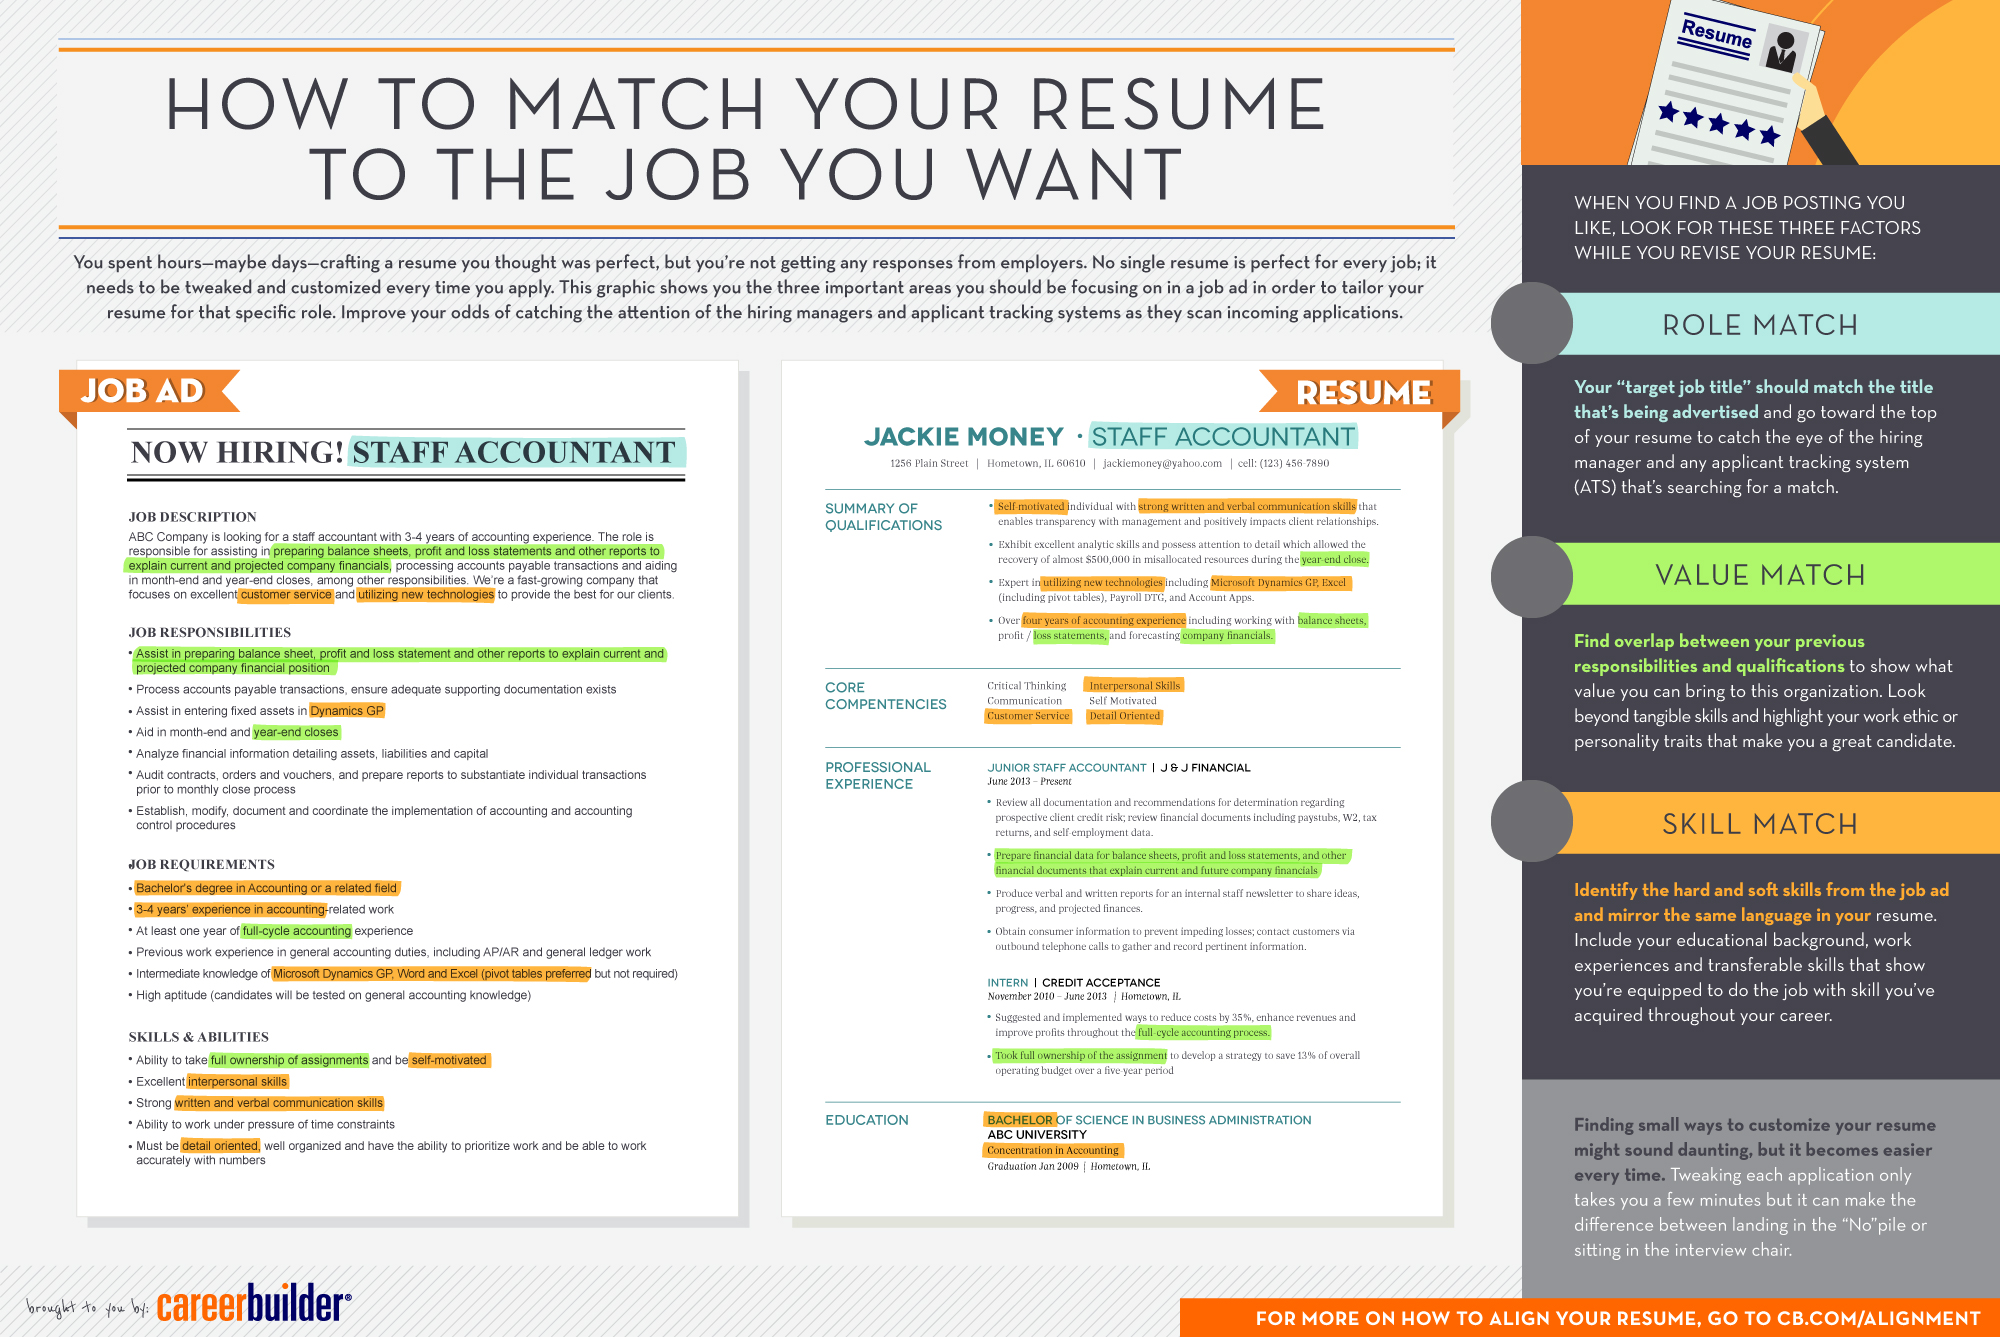 resume writing careerbuilder careers news and advice from aol finance infographic matching your resume to the